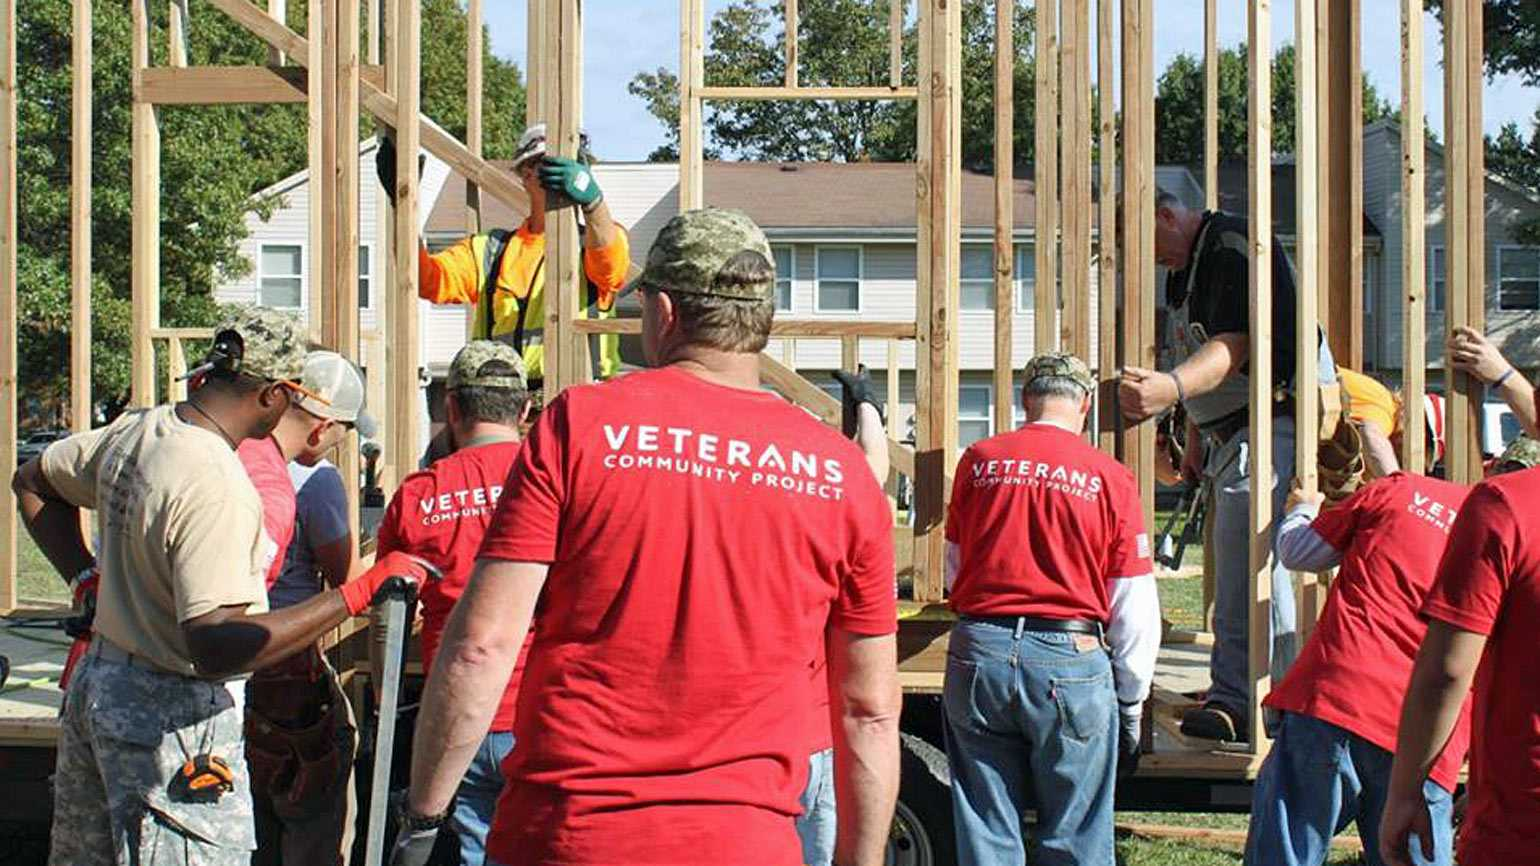 Veterans Community Project building tiny homes